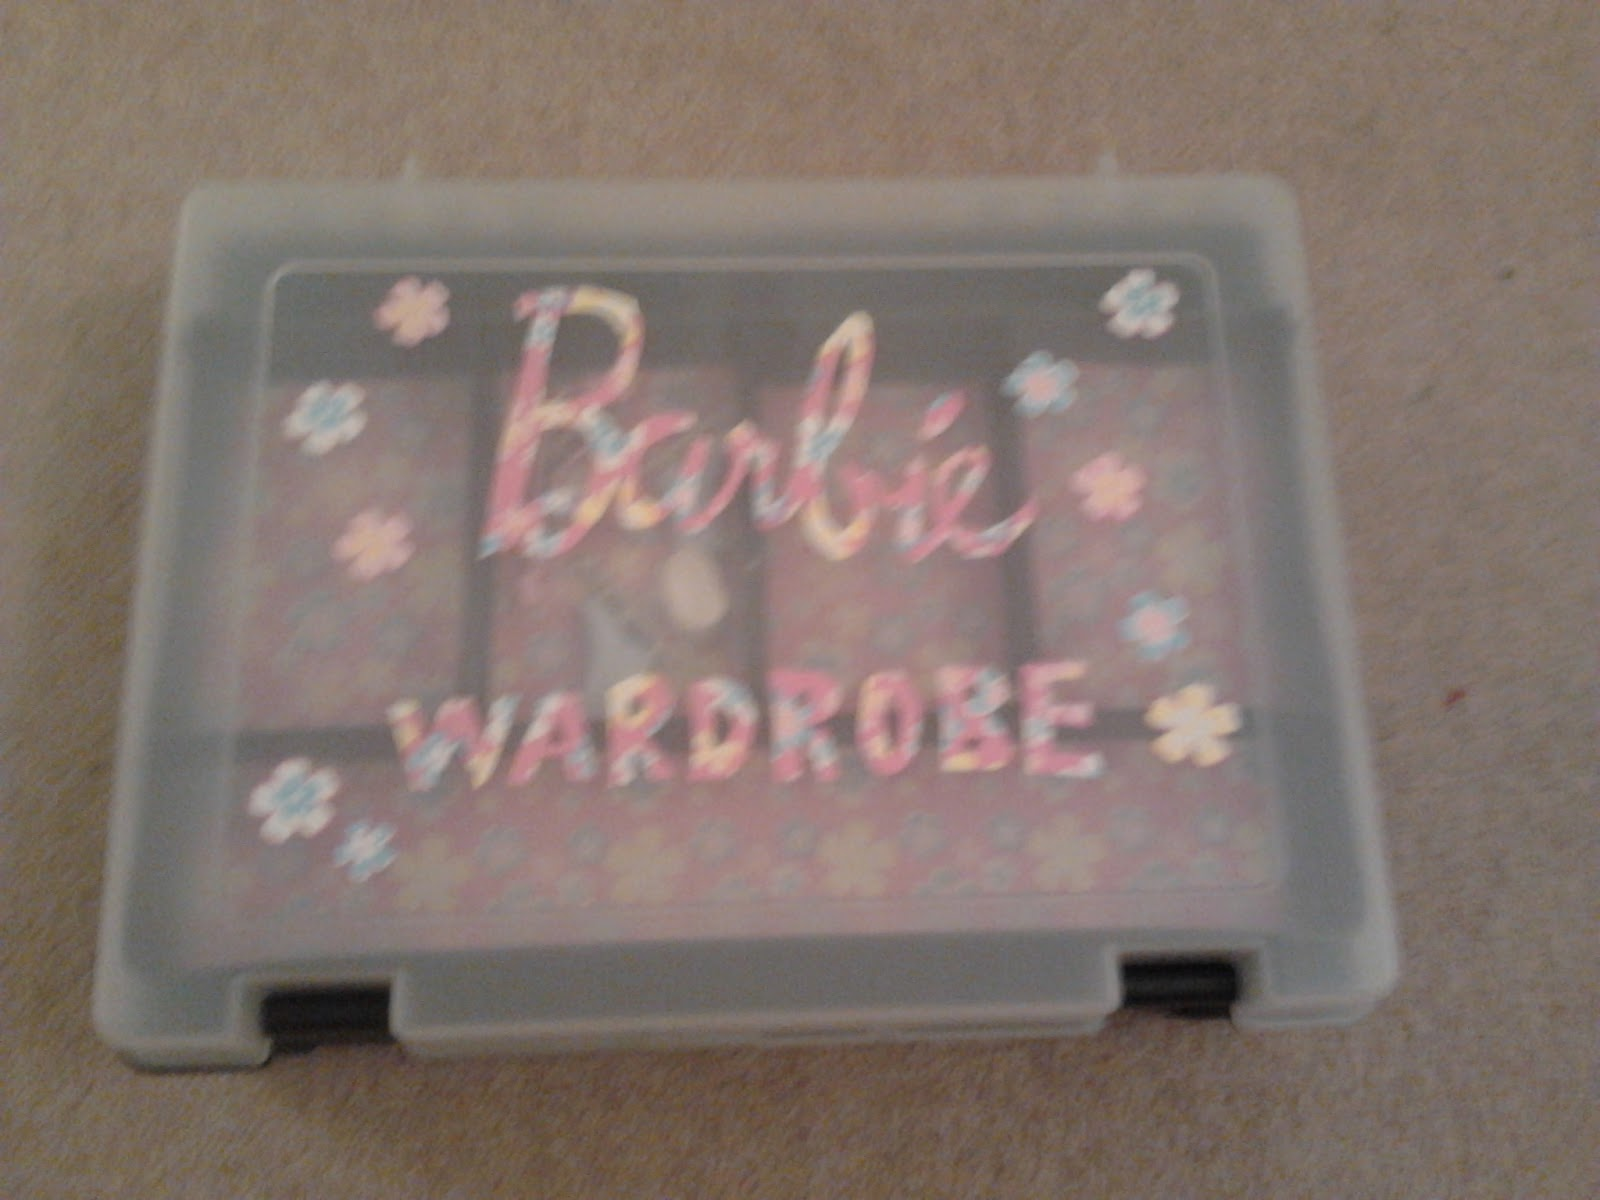 They are just getting into Barbieu0027s which were my utter obsession as a child and I am so excited they like them too! & Cobble u0026 Gobble: Homemade Gift 5 - A Barbie clothes storage/wardrobe